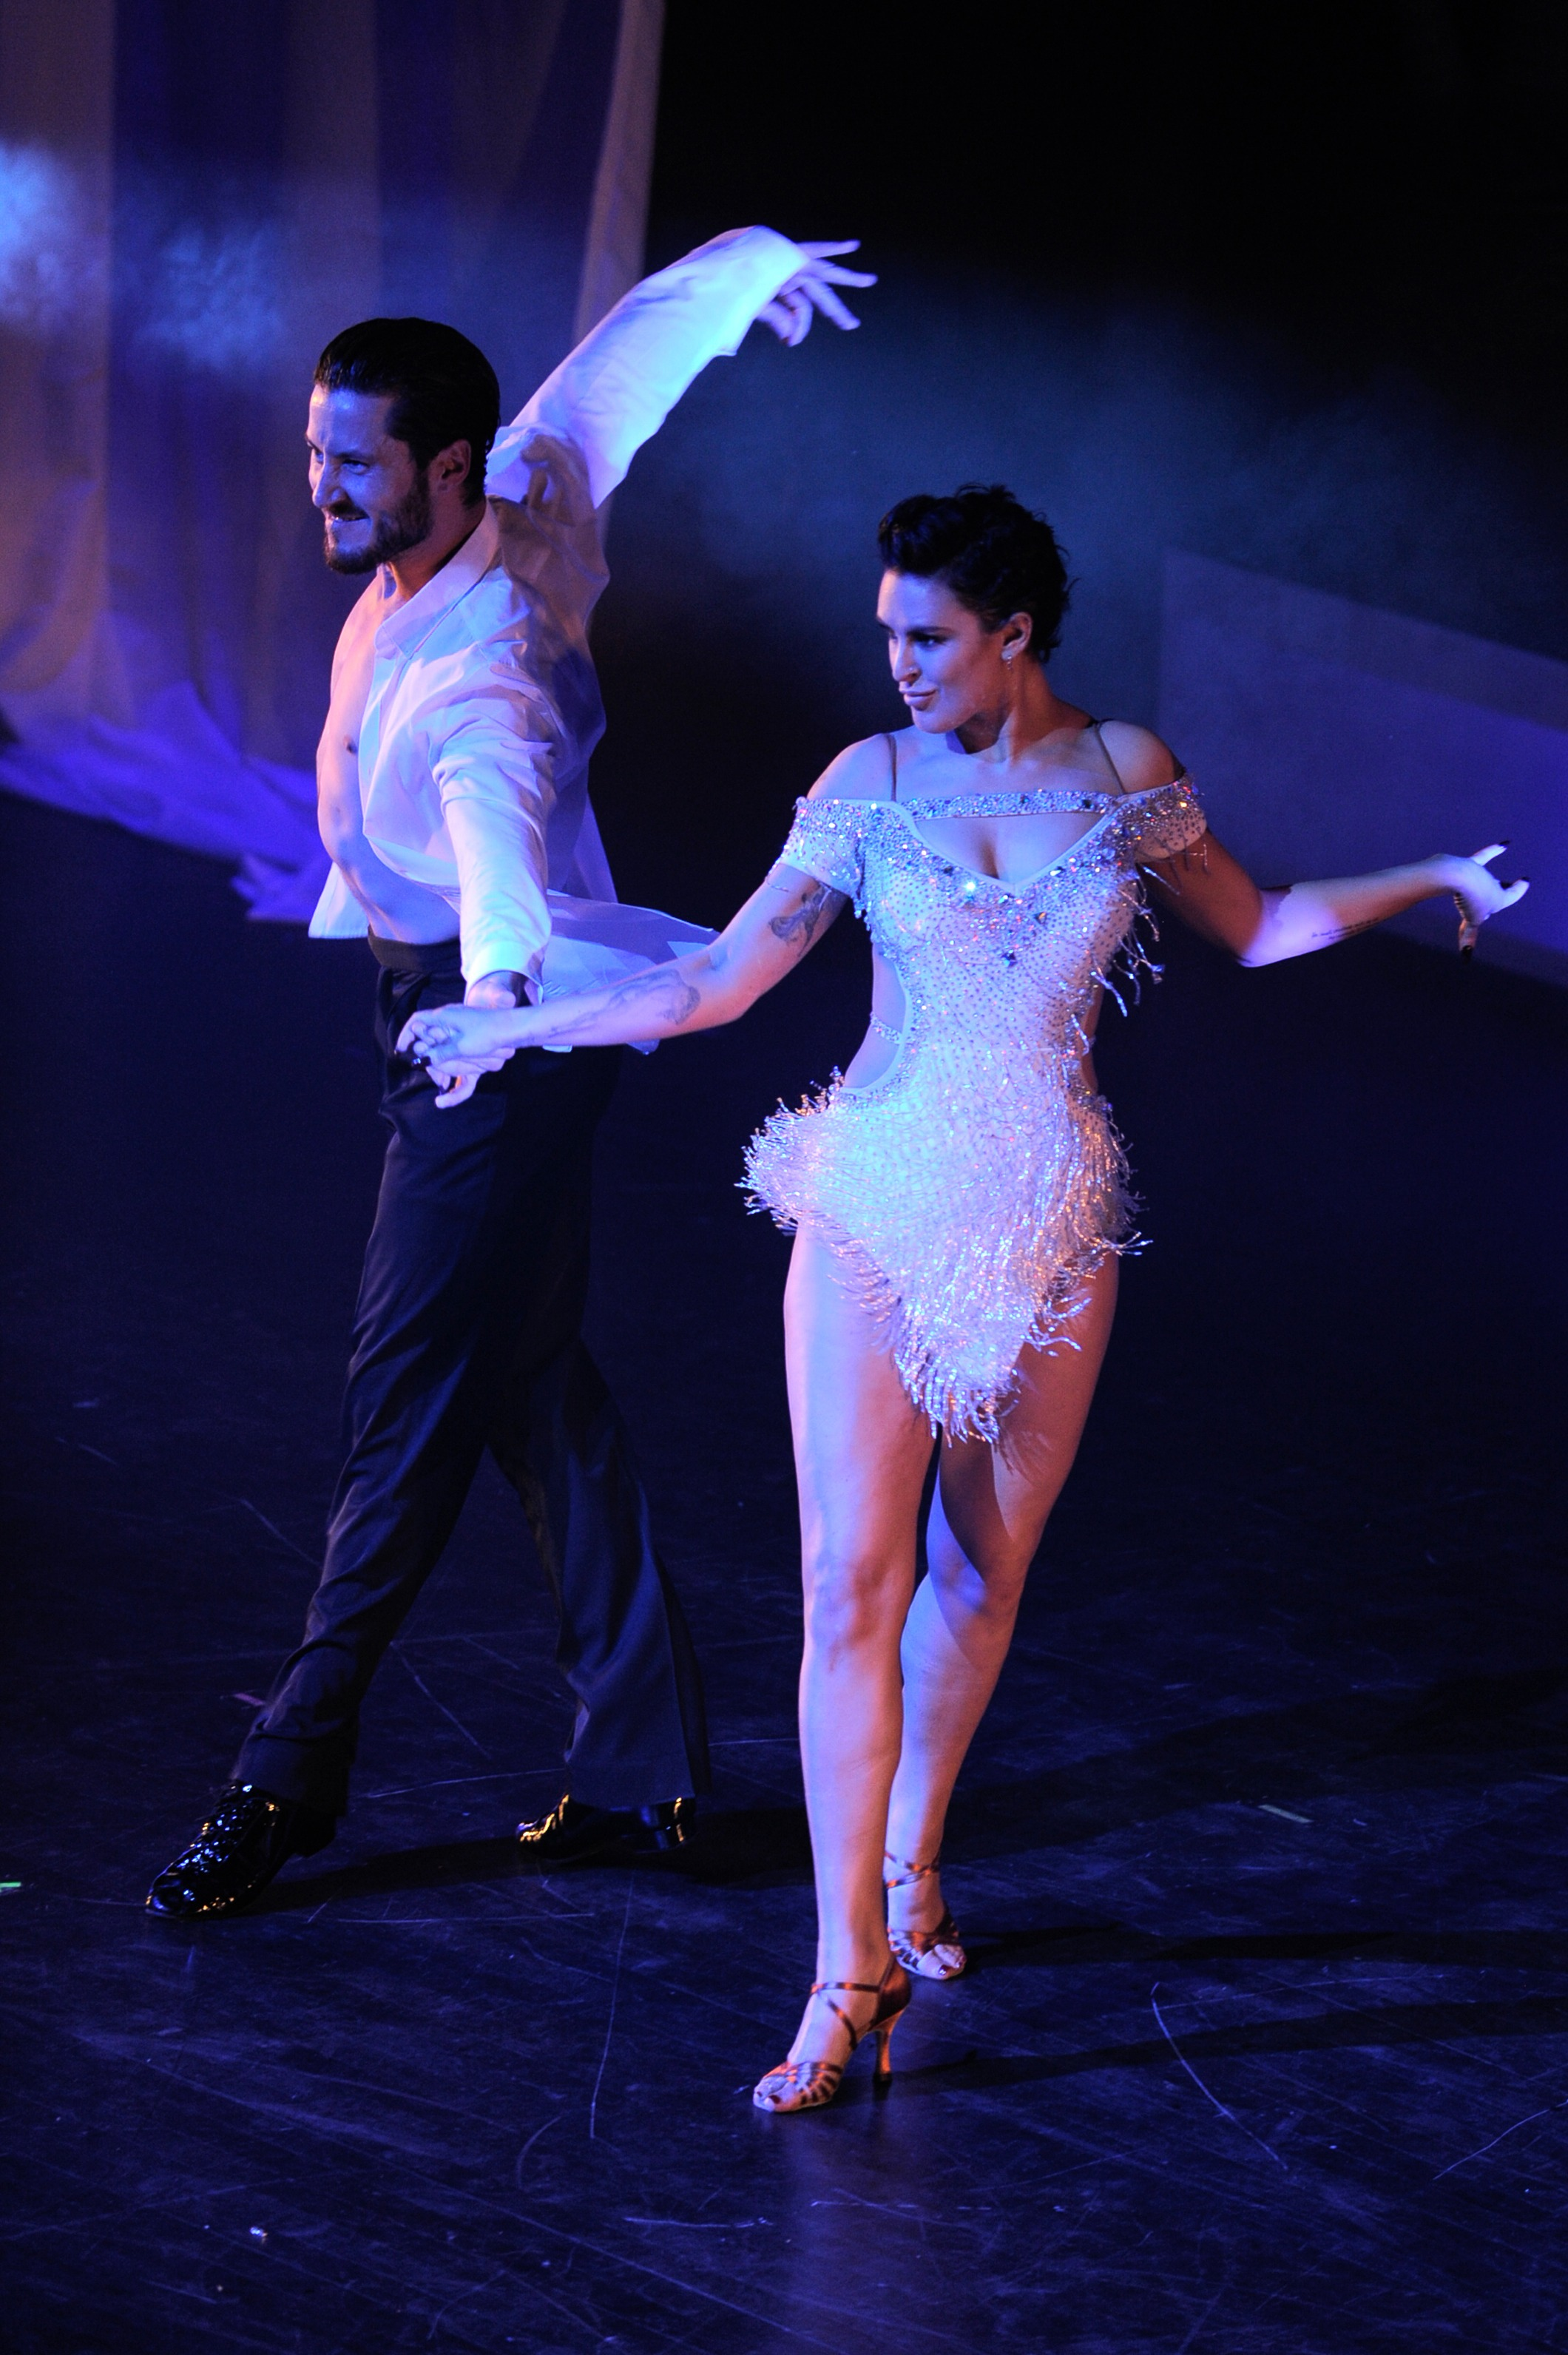 Valentin Chmerkovskiy and Rumer Willis perform onstage during SWAY: A Dance Trilogy at Gusman Center for the Performing Arts on December 5, 2015 in Miami, Florida.